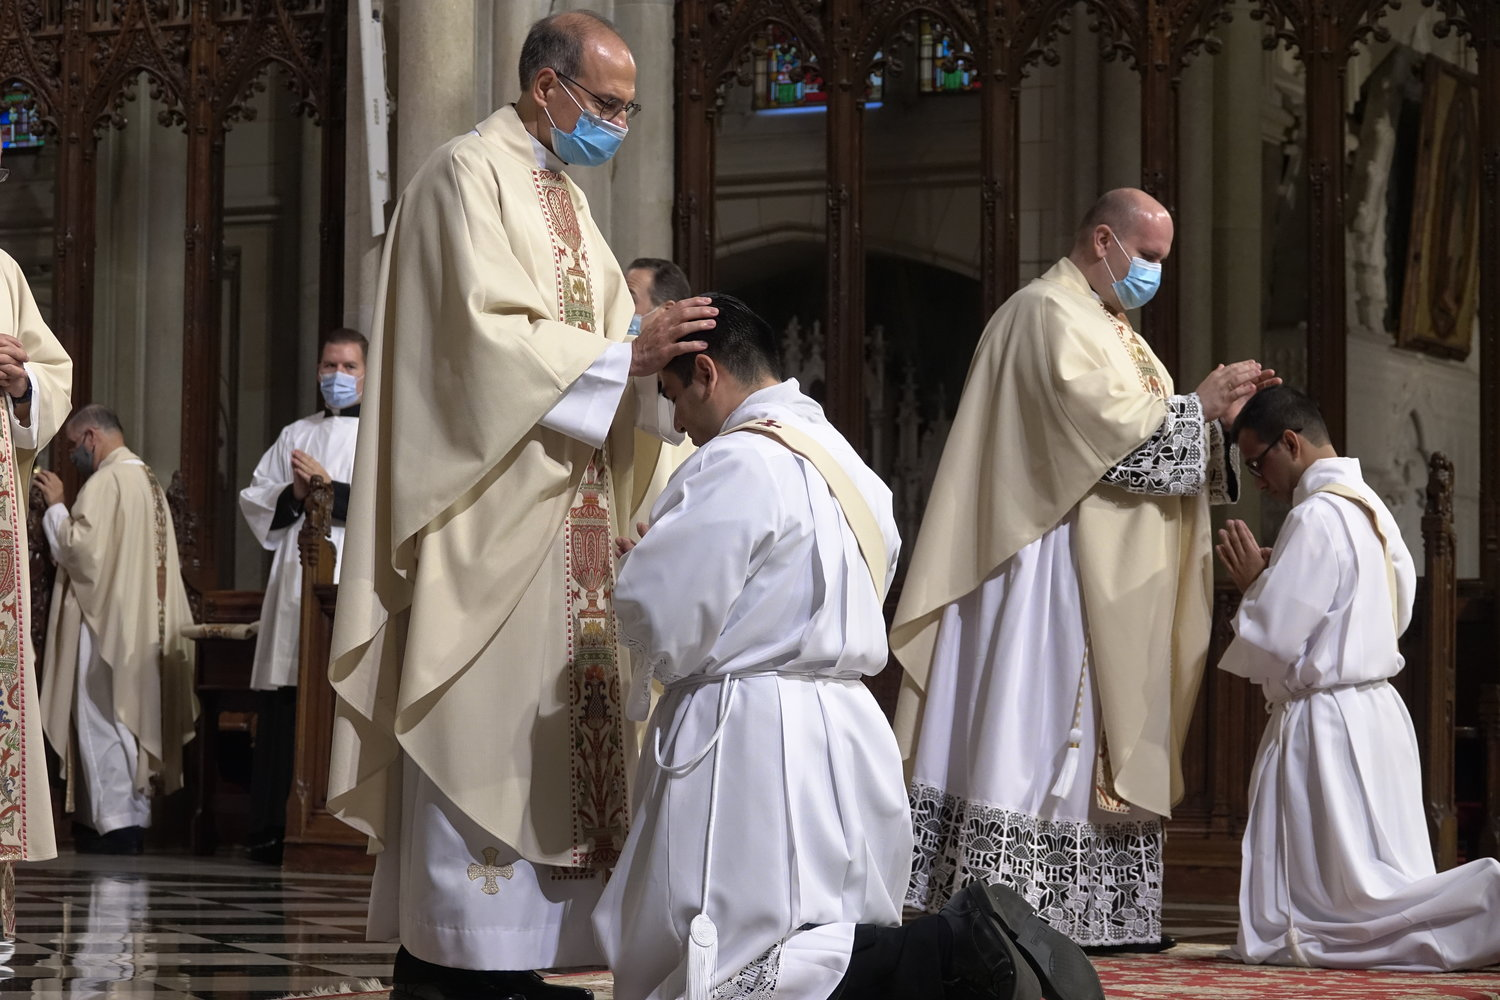 Priests lay hands on the heads of their new priestly brothers.